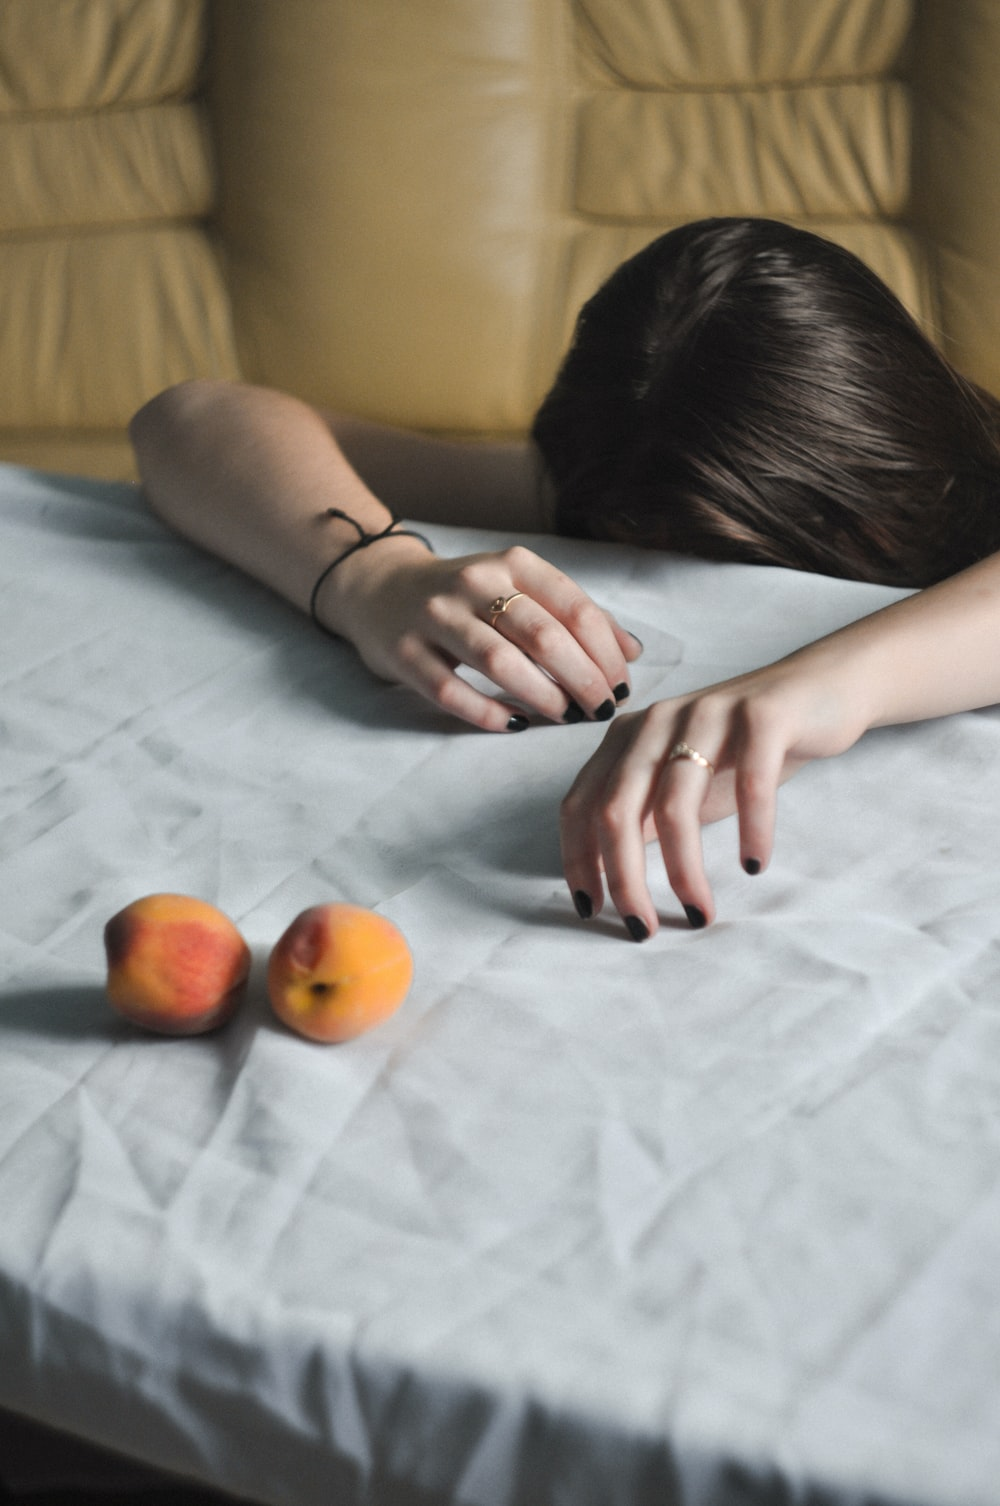 woman leaning on white textile near fruits